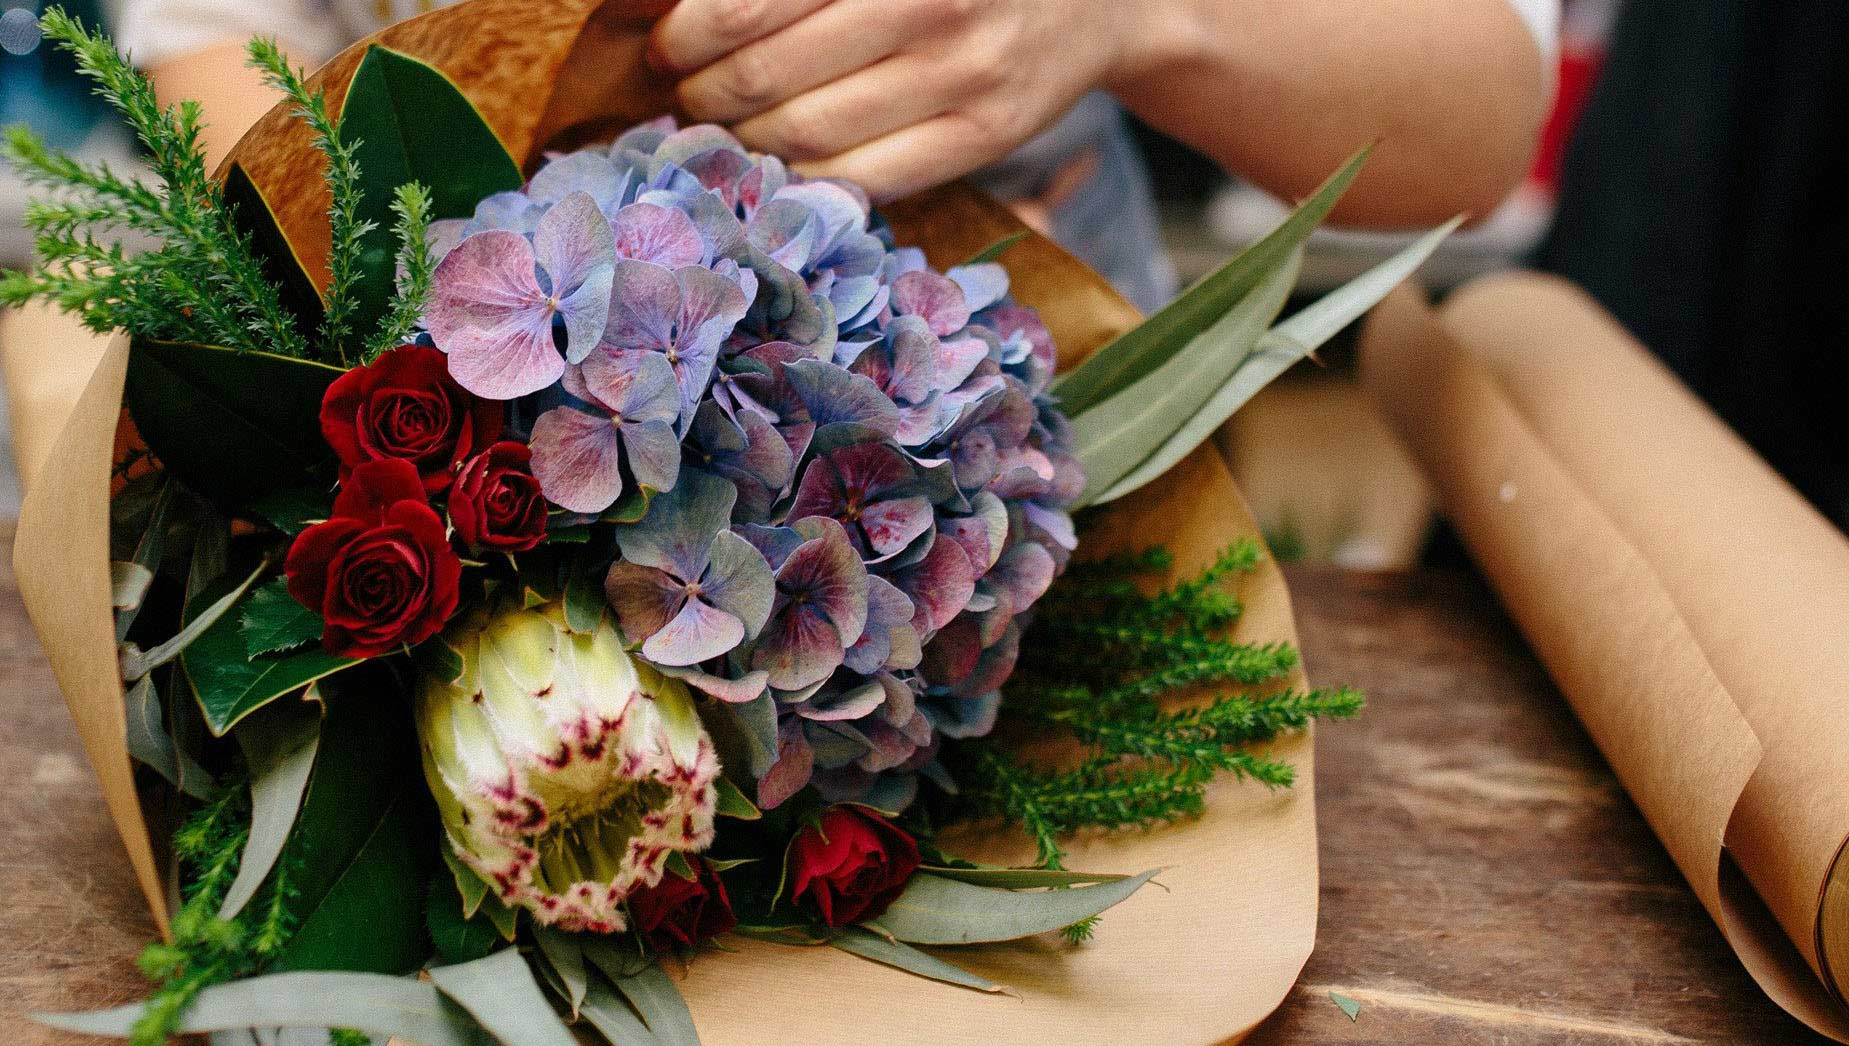 Singapore Florist Flower Delivery By Lush And Love Flower In Box